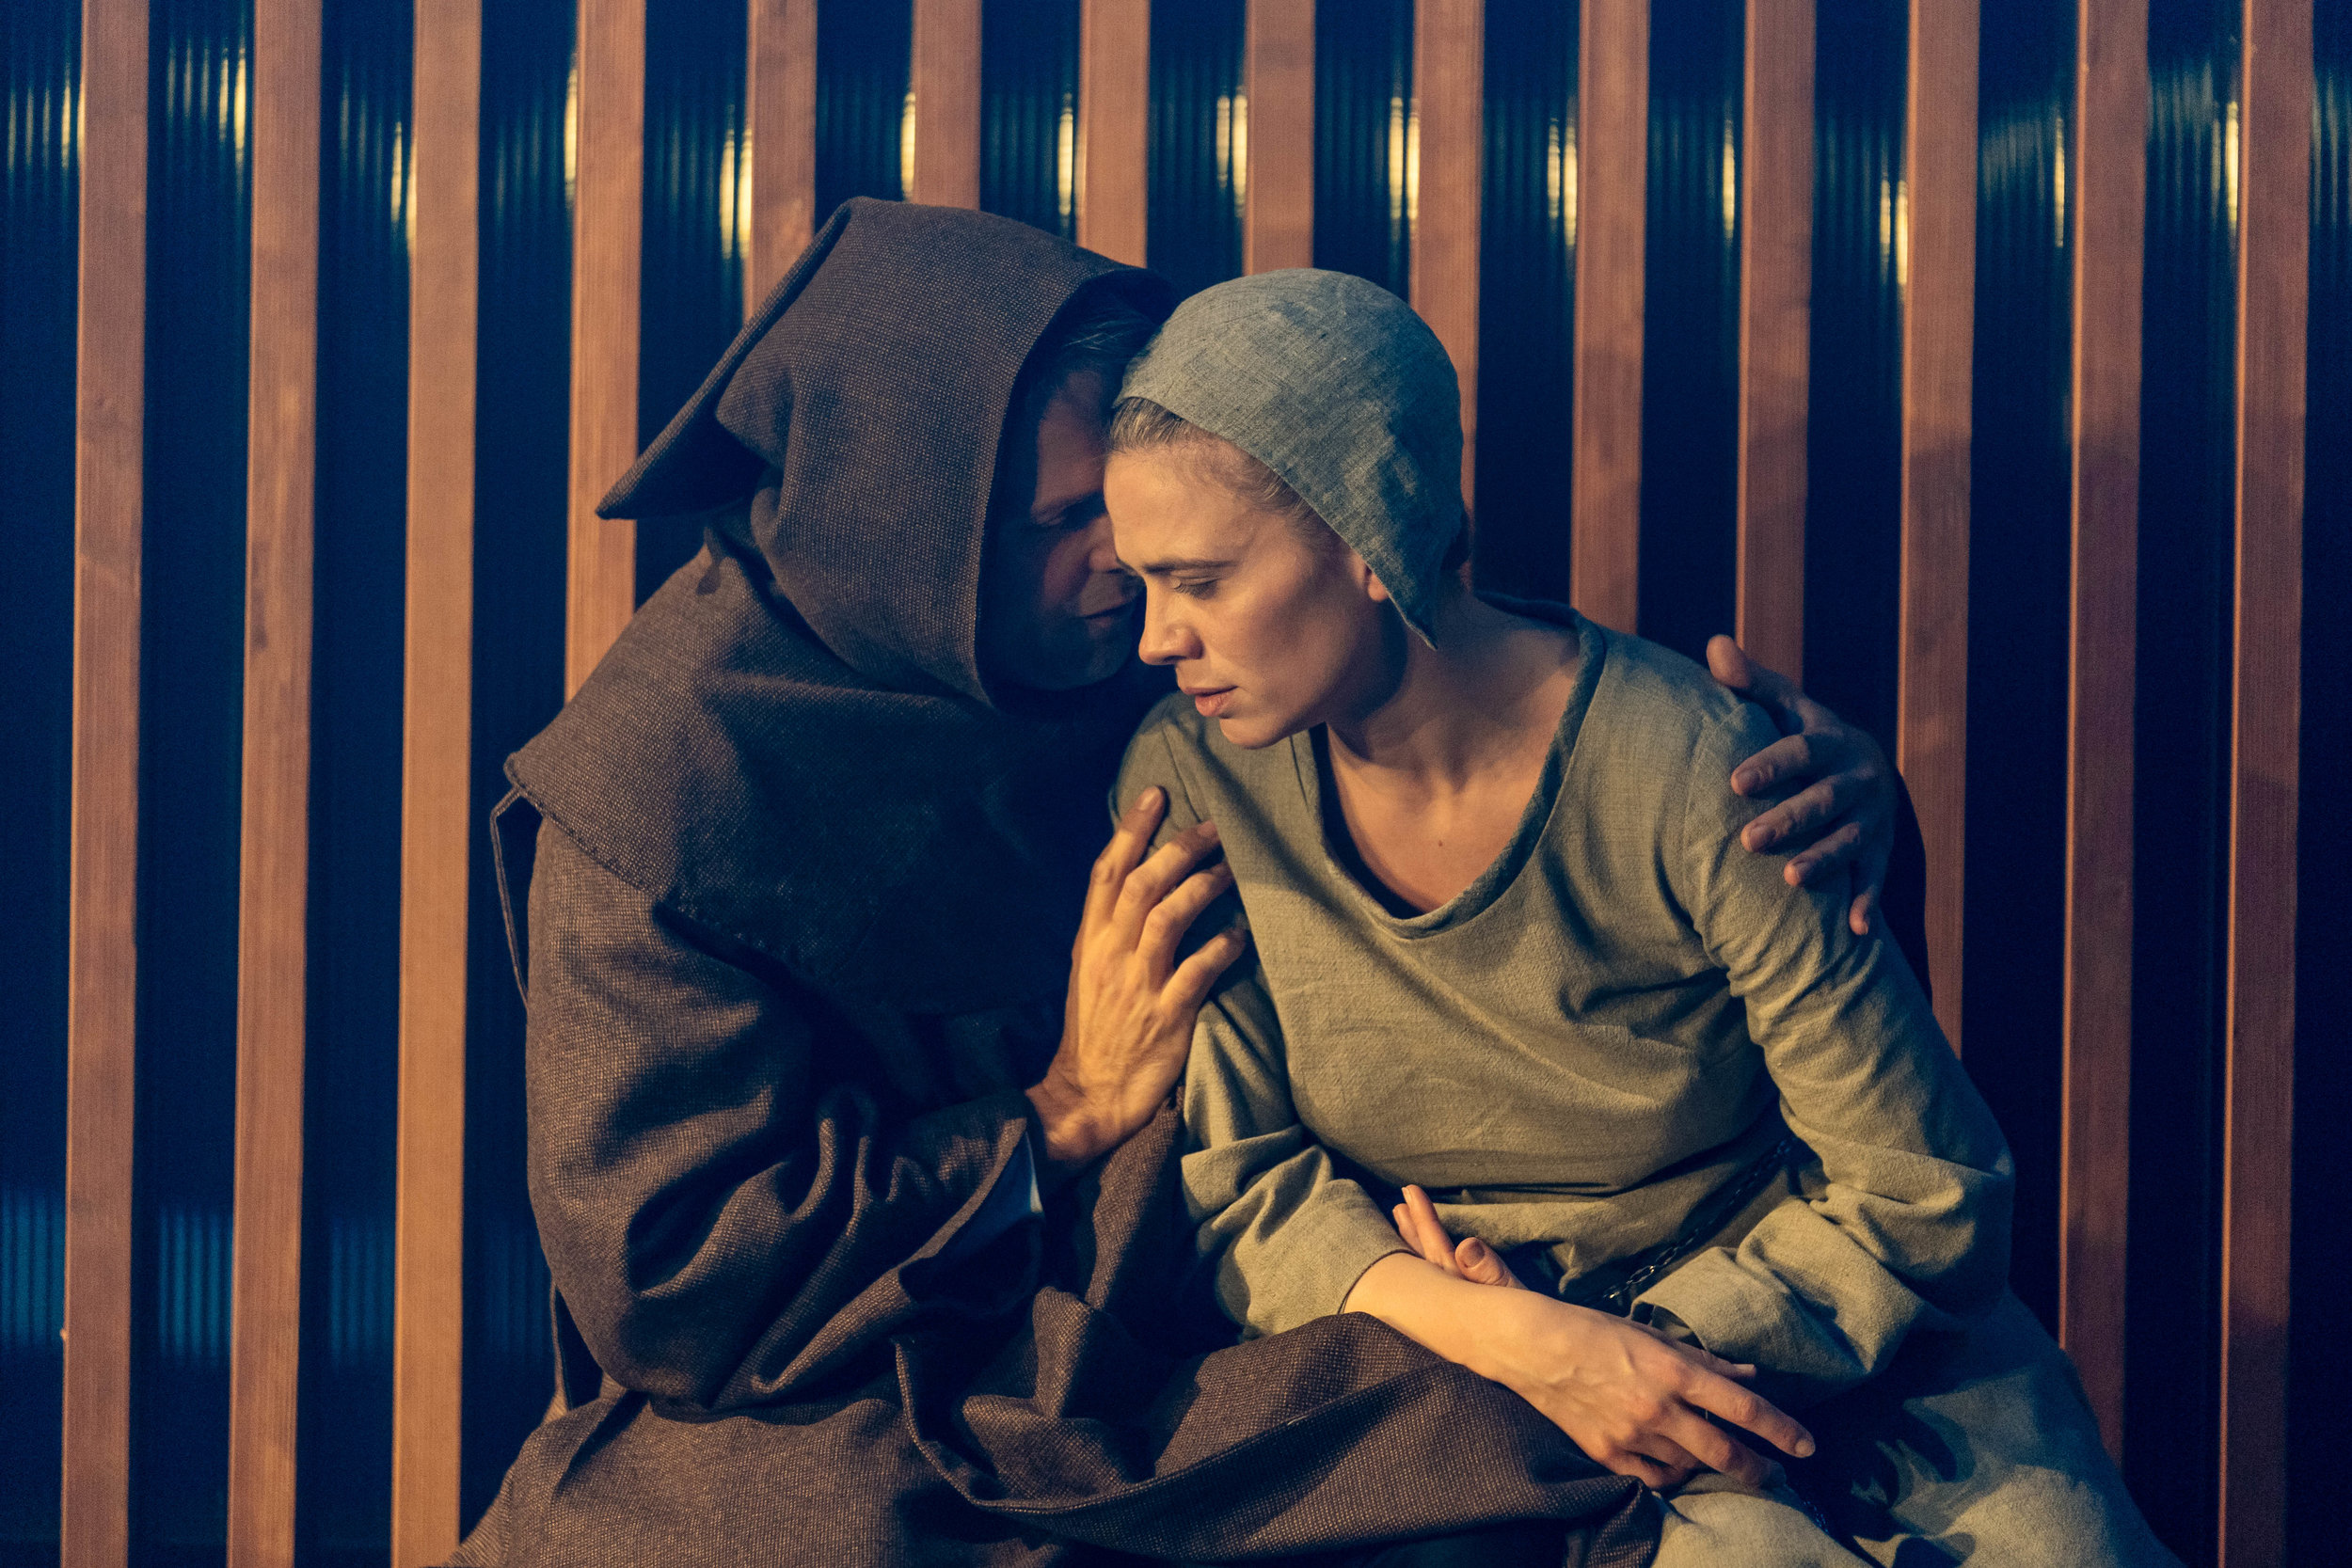 Nicholas Burns and Hayley Atwell in Measure for Measure at the Donmar Warehouse directed by Josie Rourke, designed by Peter McKintosh. Photo Ma-130.jpg